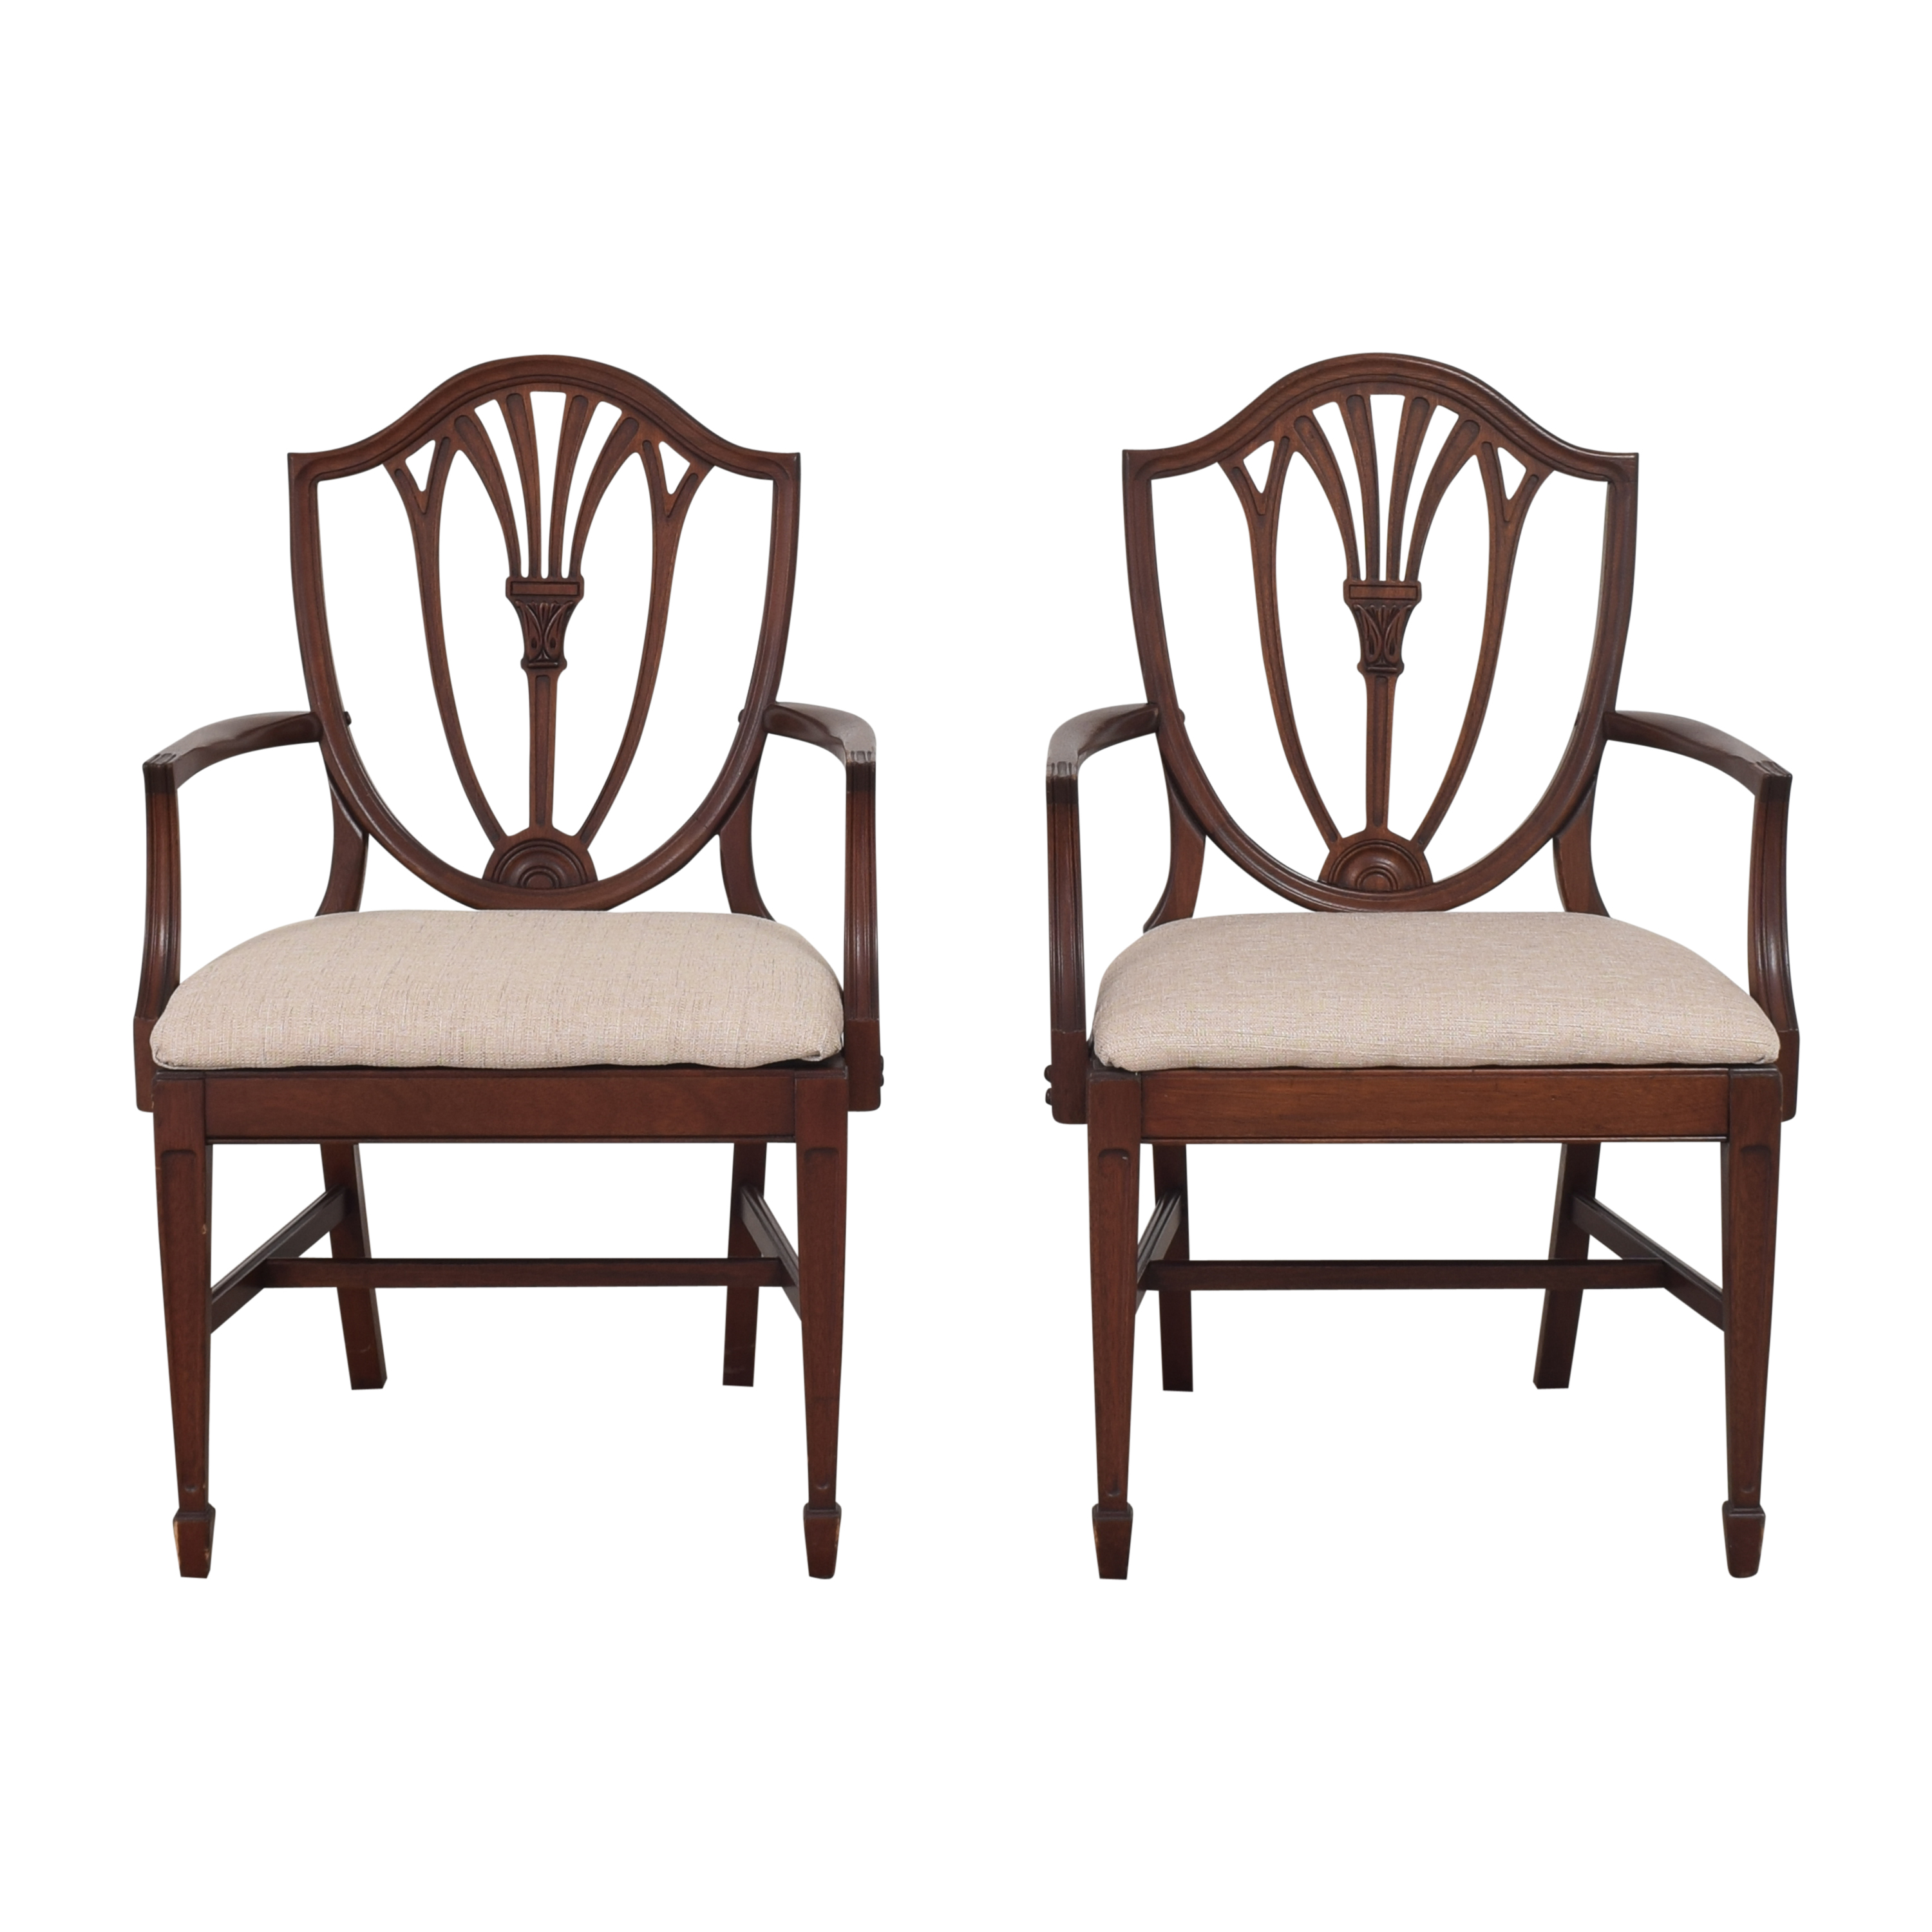 Drexel Heritage Drexel Heritage Shield Back Dining Arm Chairs pa